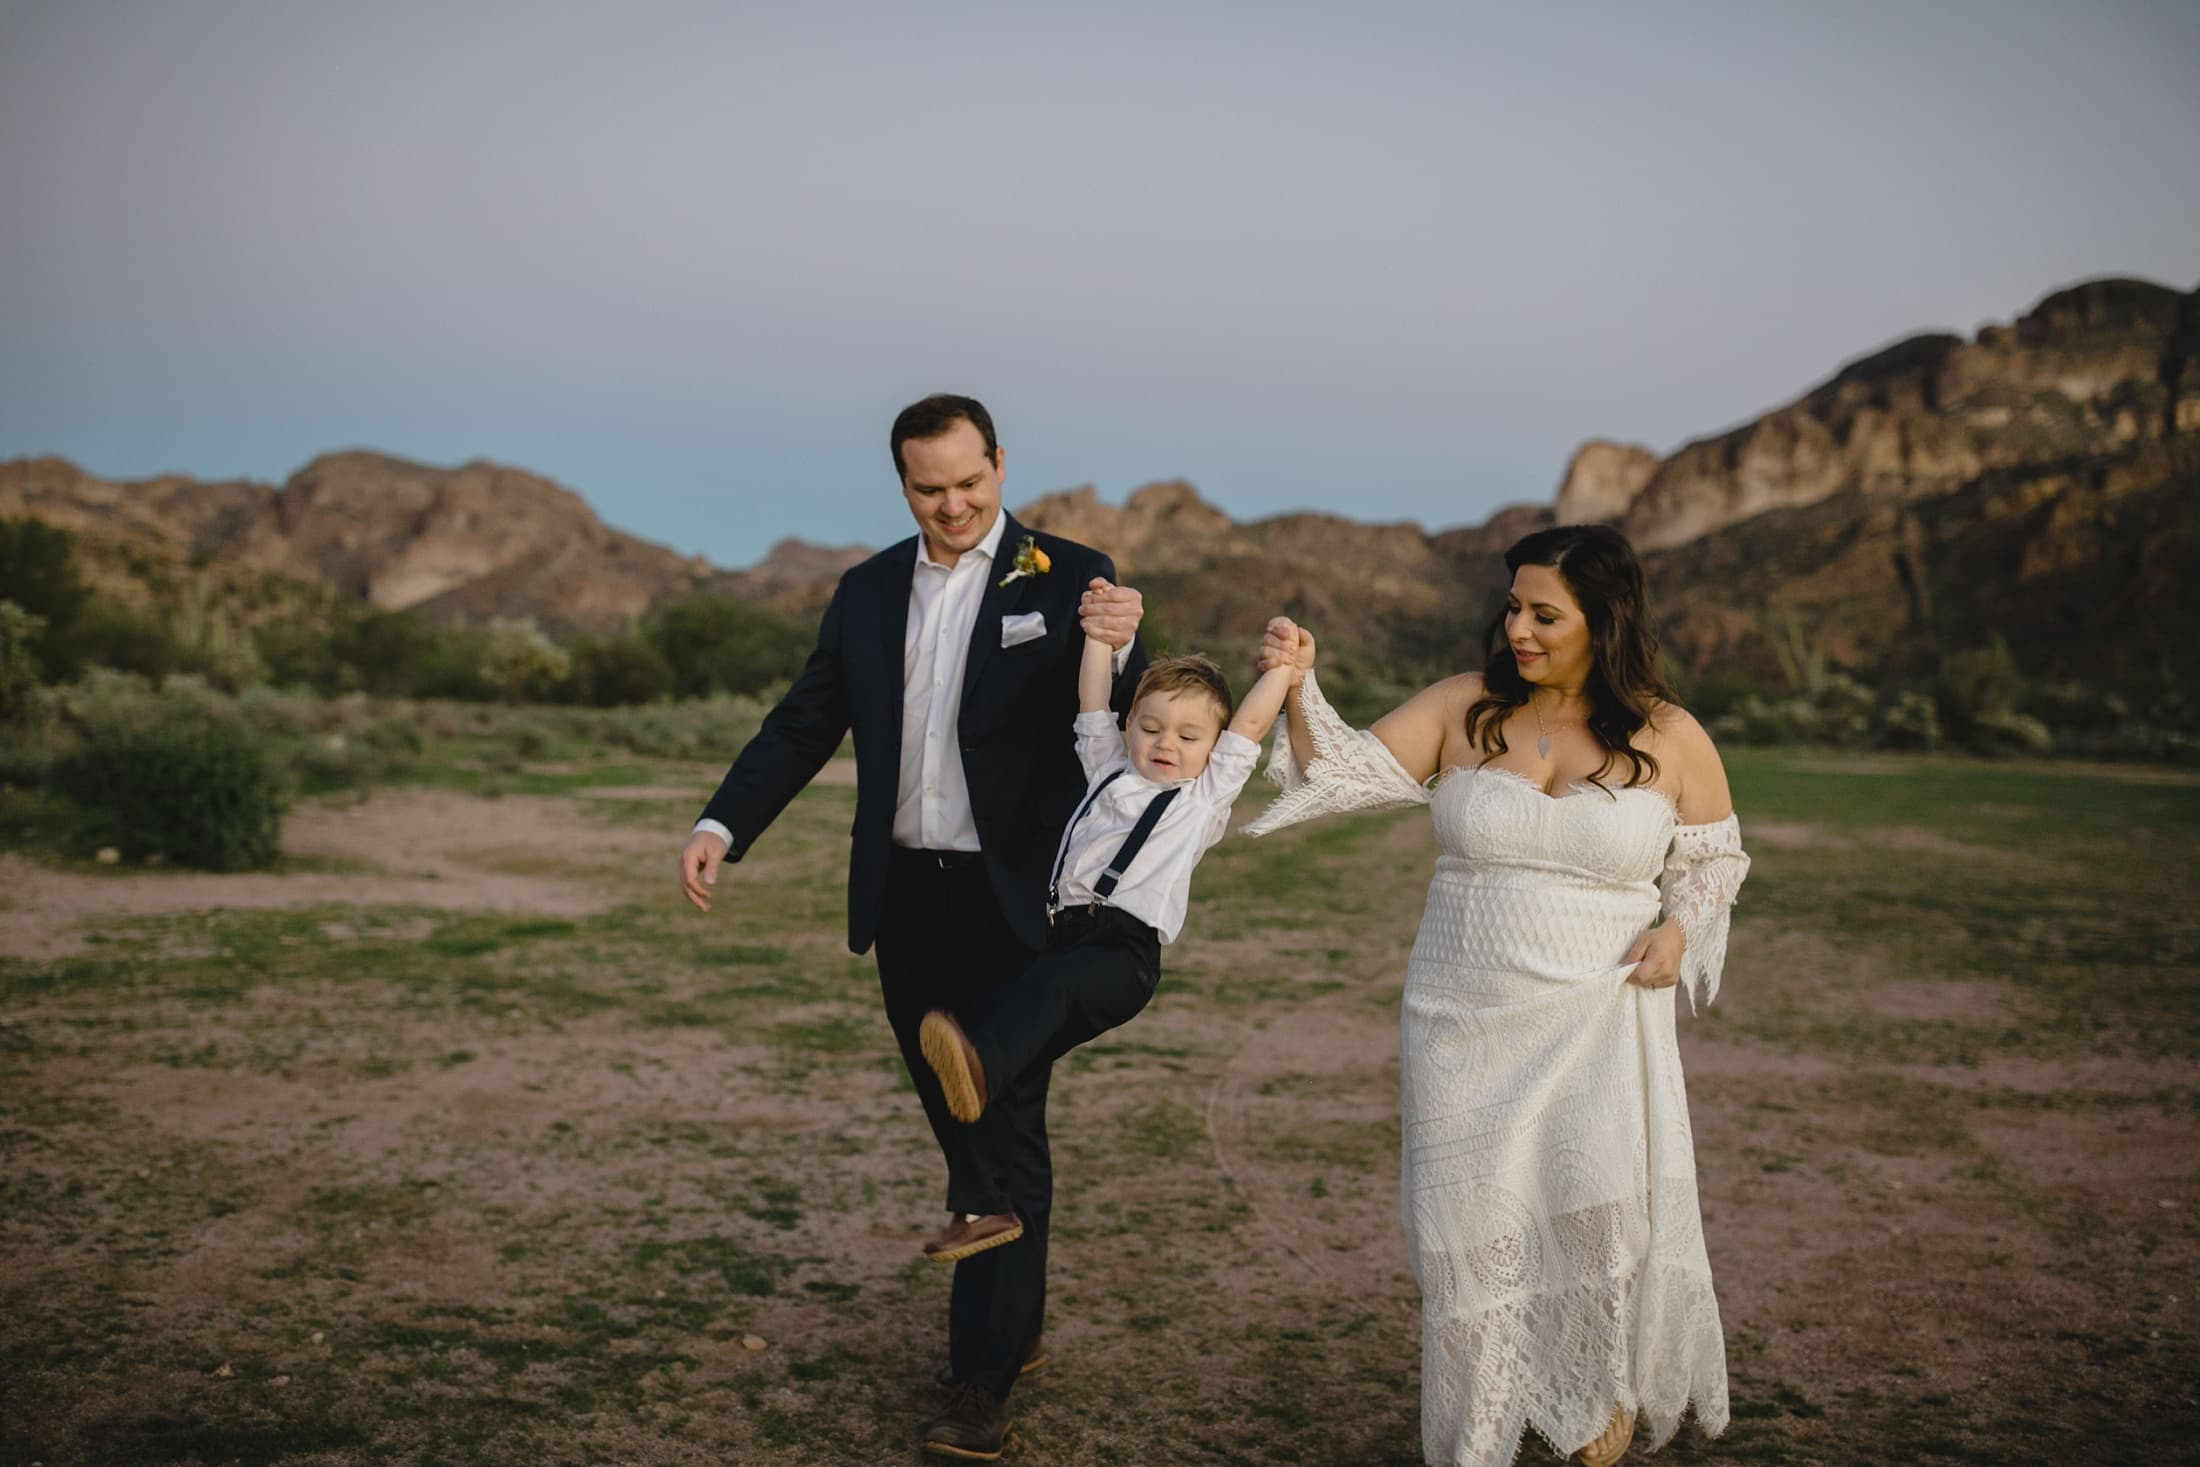 small wedding in Arizona bride and groom with kid